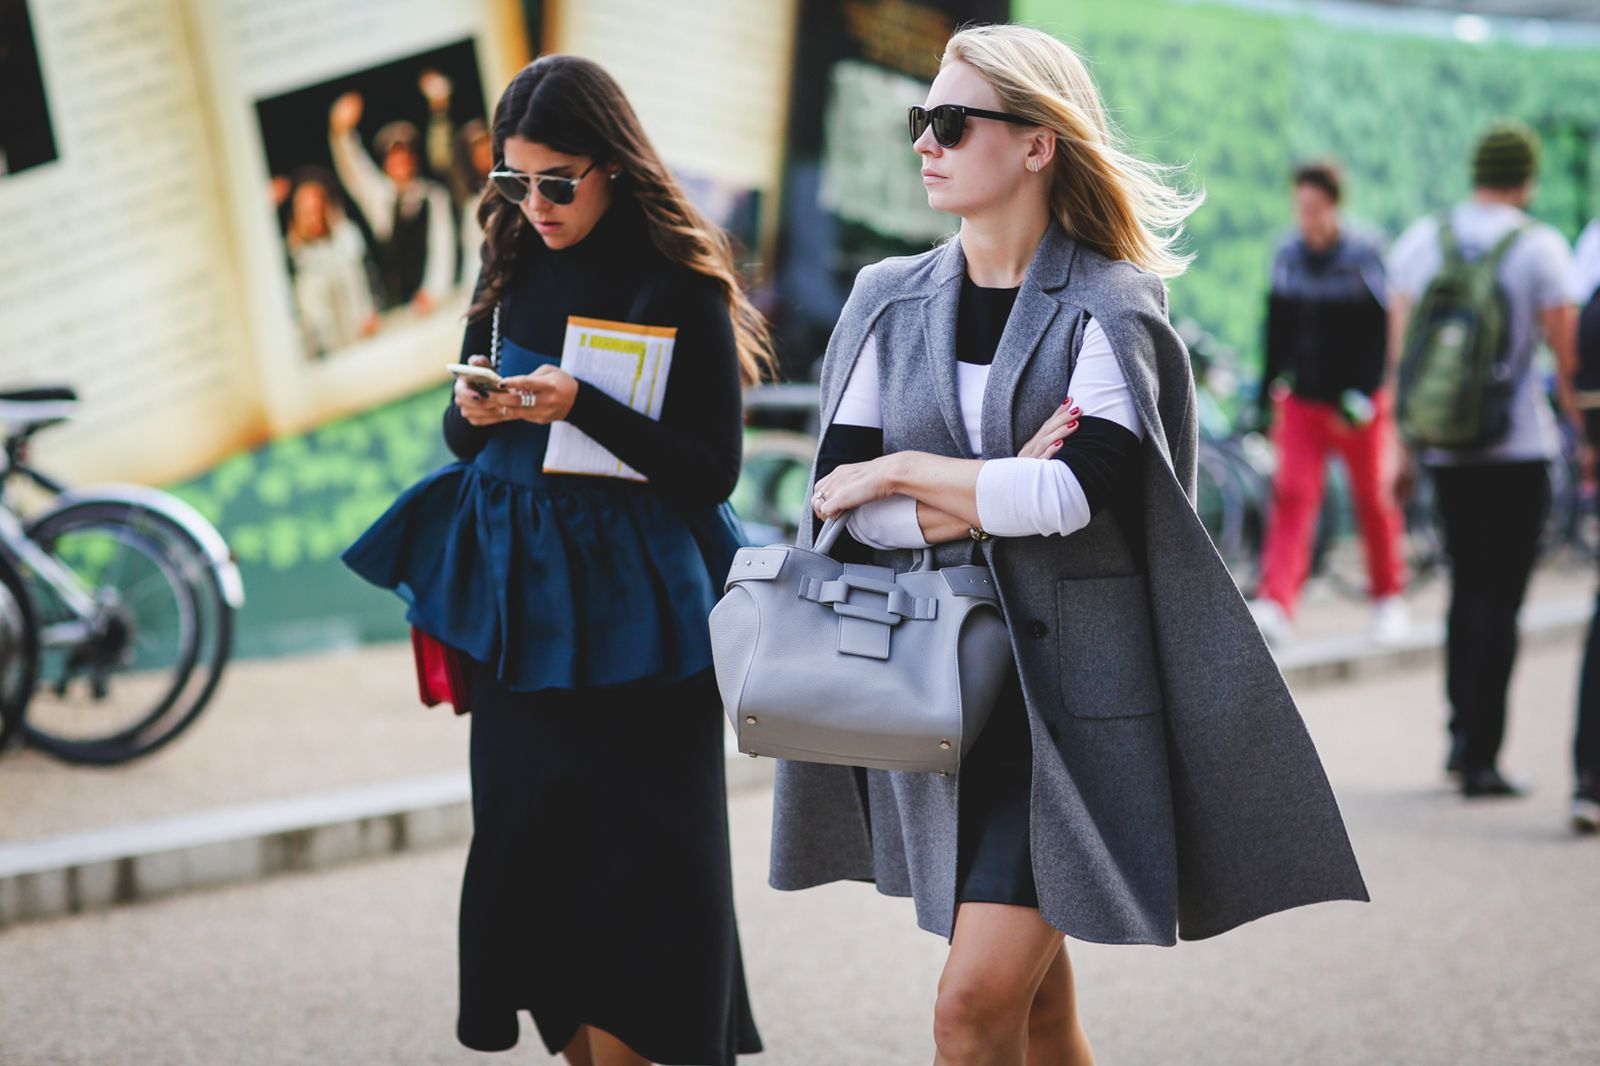 London Street Style Photos That Prove Fall Is NOT Boring #refinery29  http://www.refinery29.com/2015/09/94443/london-fashion-week-spring-2016-street-style-pictures#slide-18  It's a proven fact that cape coats make you feel like a superhero....